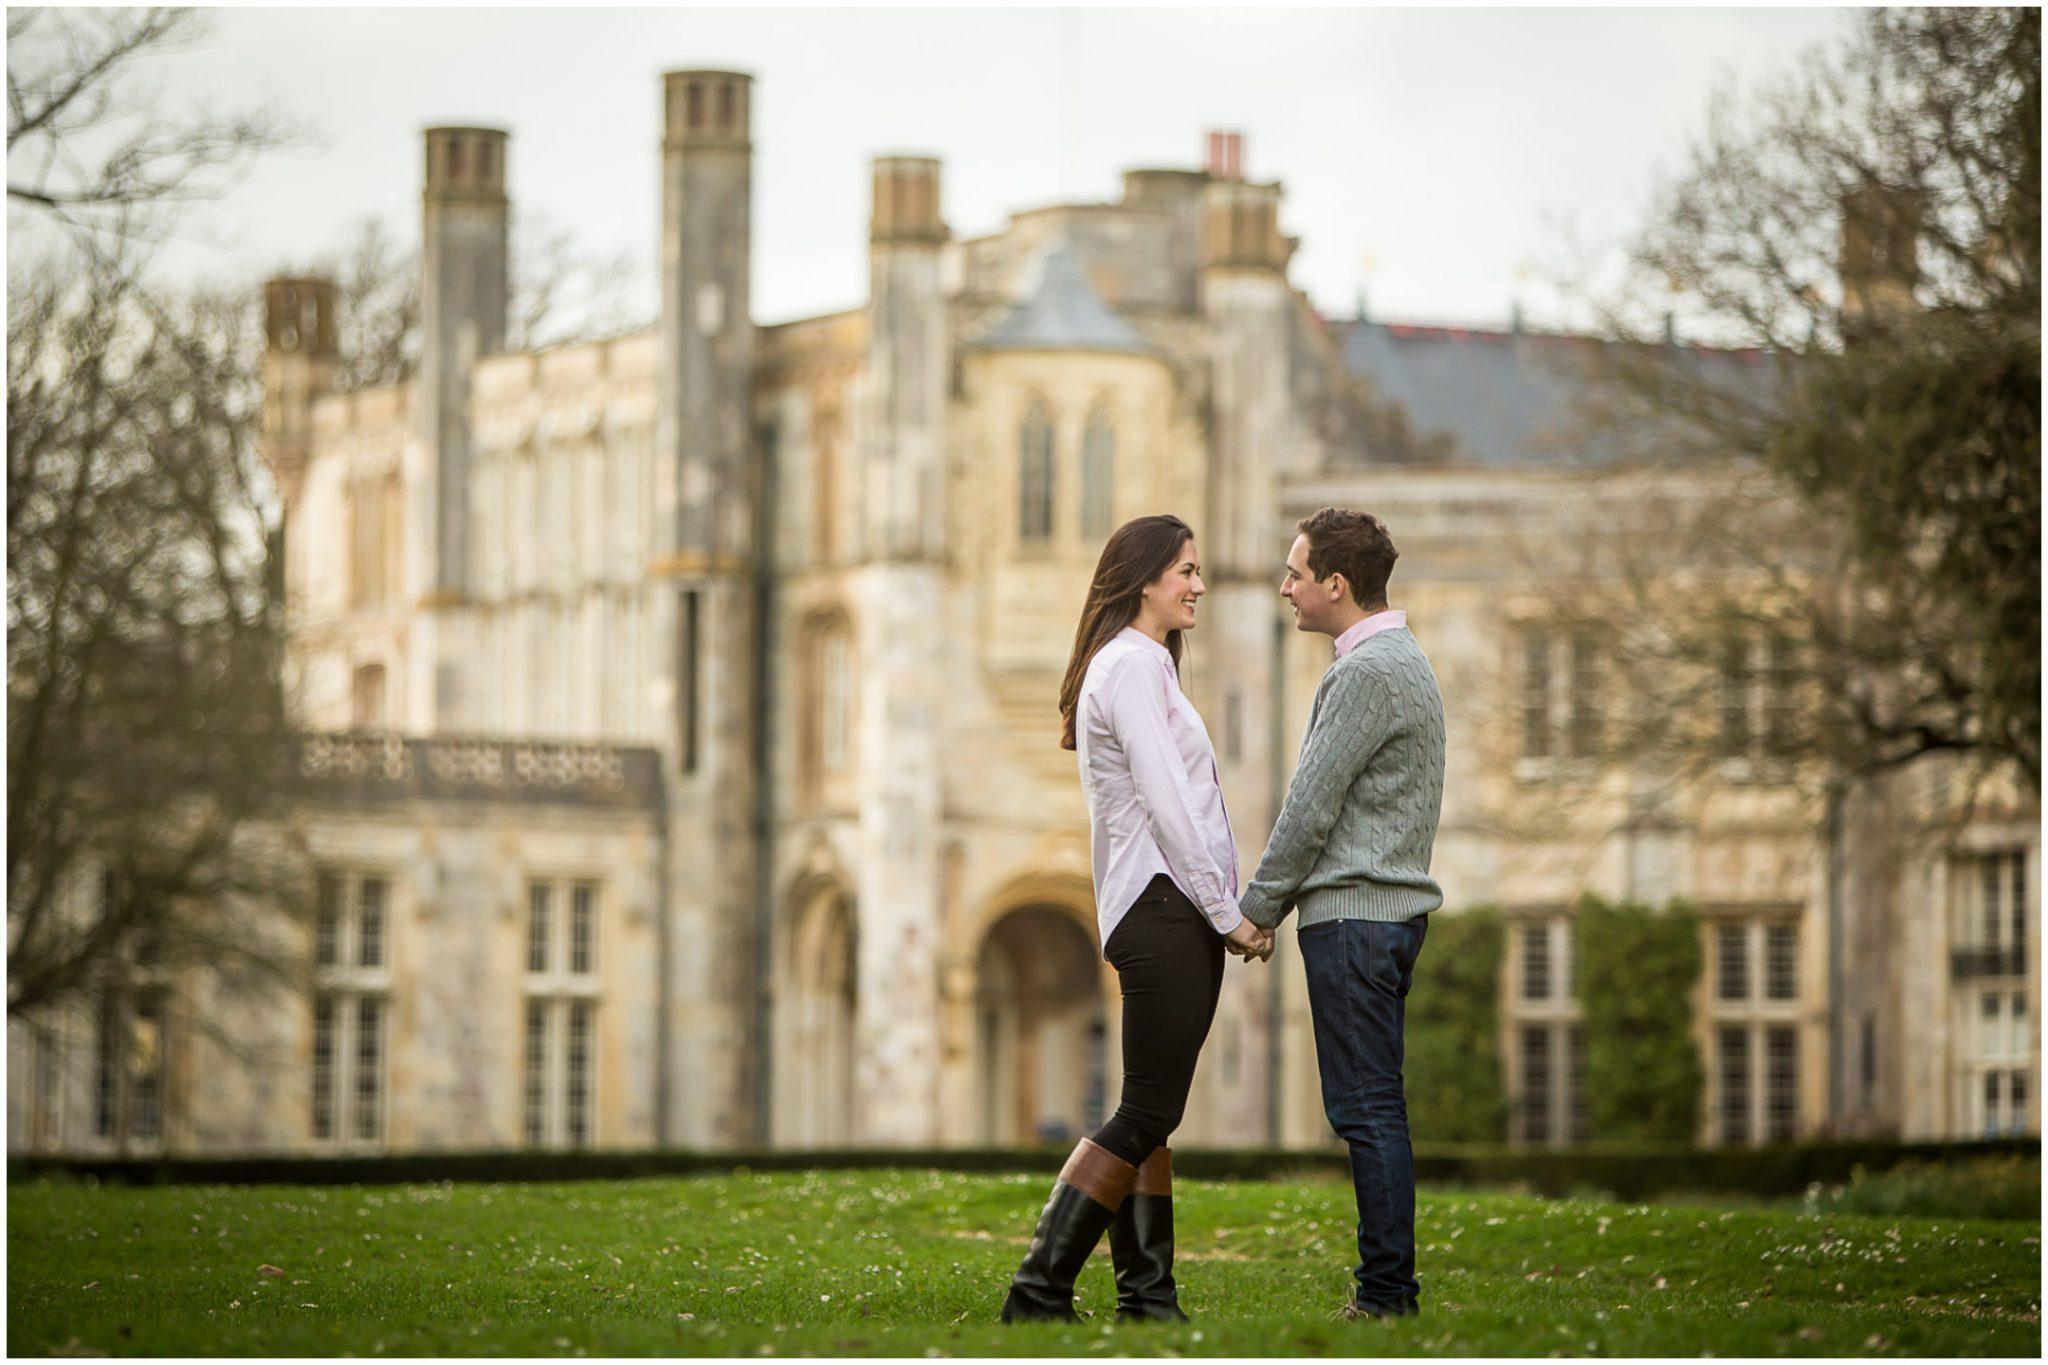 Couple posed in grounds of Highcliffe Castle, New Forest